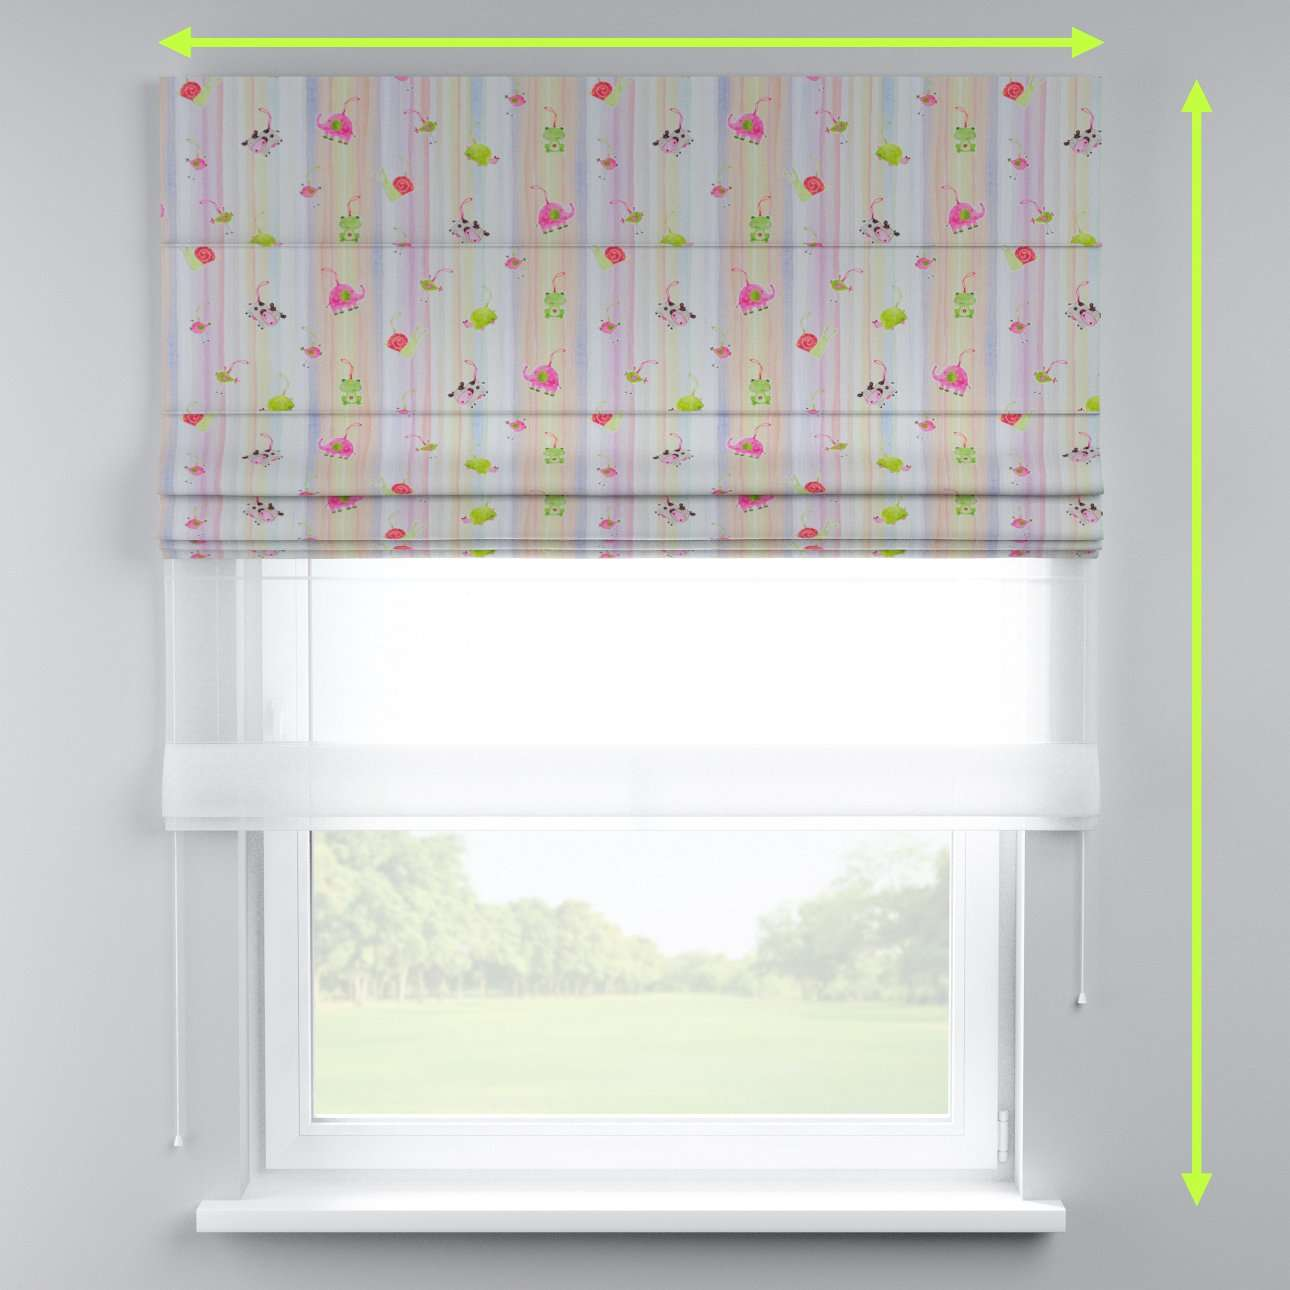 Voile and fabric roman blind (DUO II) in collection Apanona, fabric: 151-05